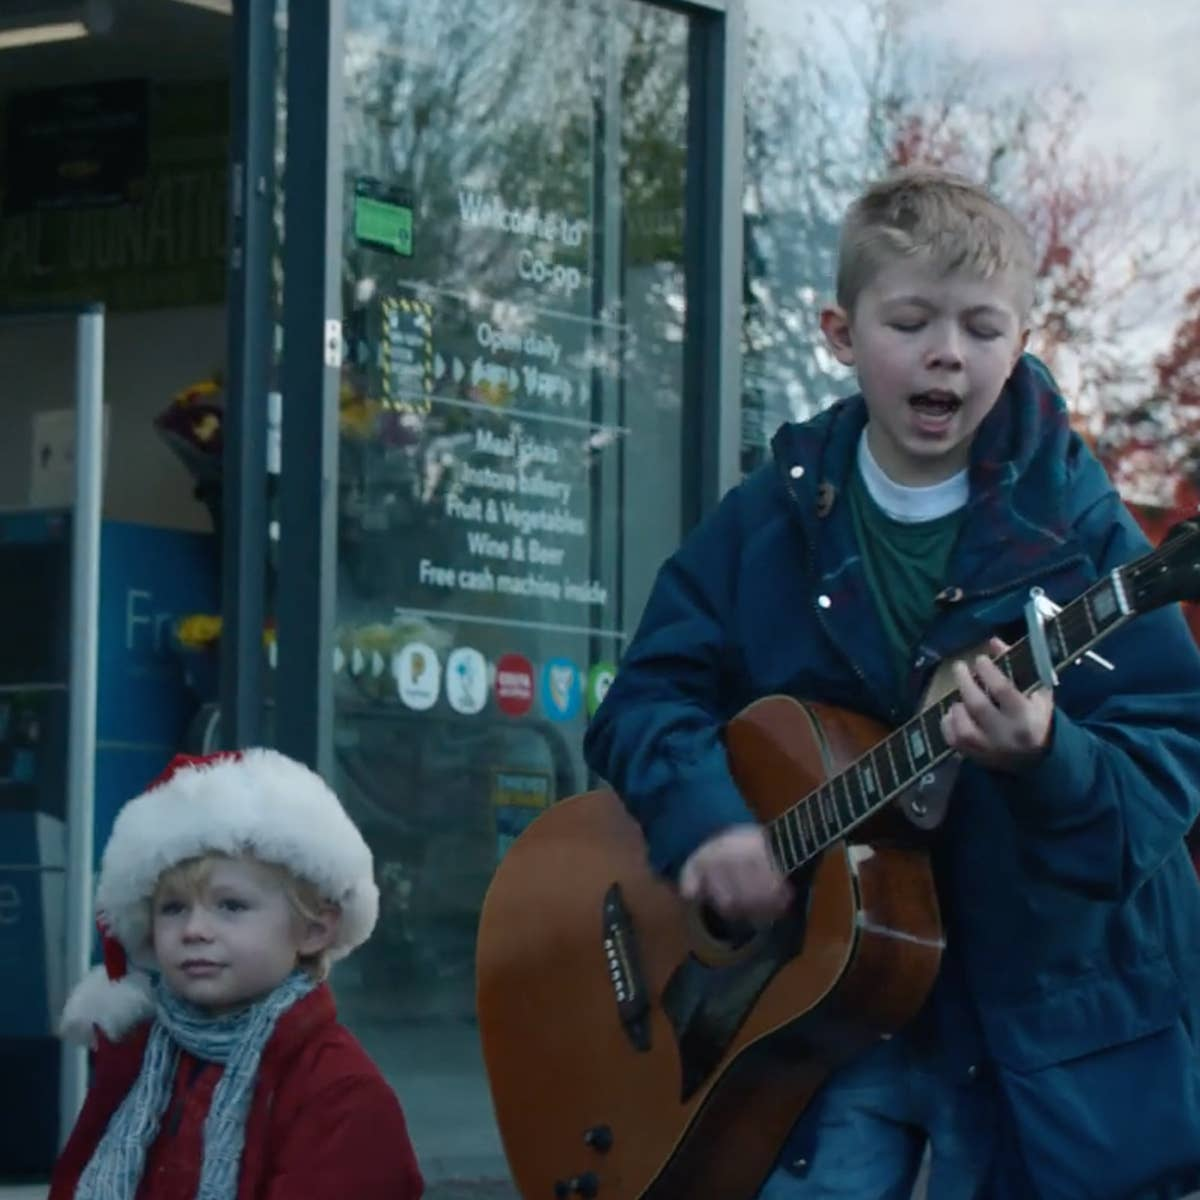 Co-op unveils its tearjerking Christmas advert featuring two young brothers singing Oasis cover